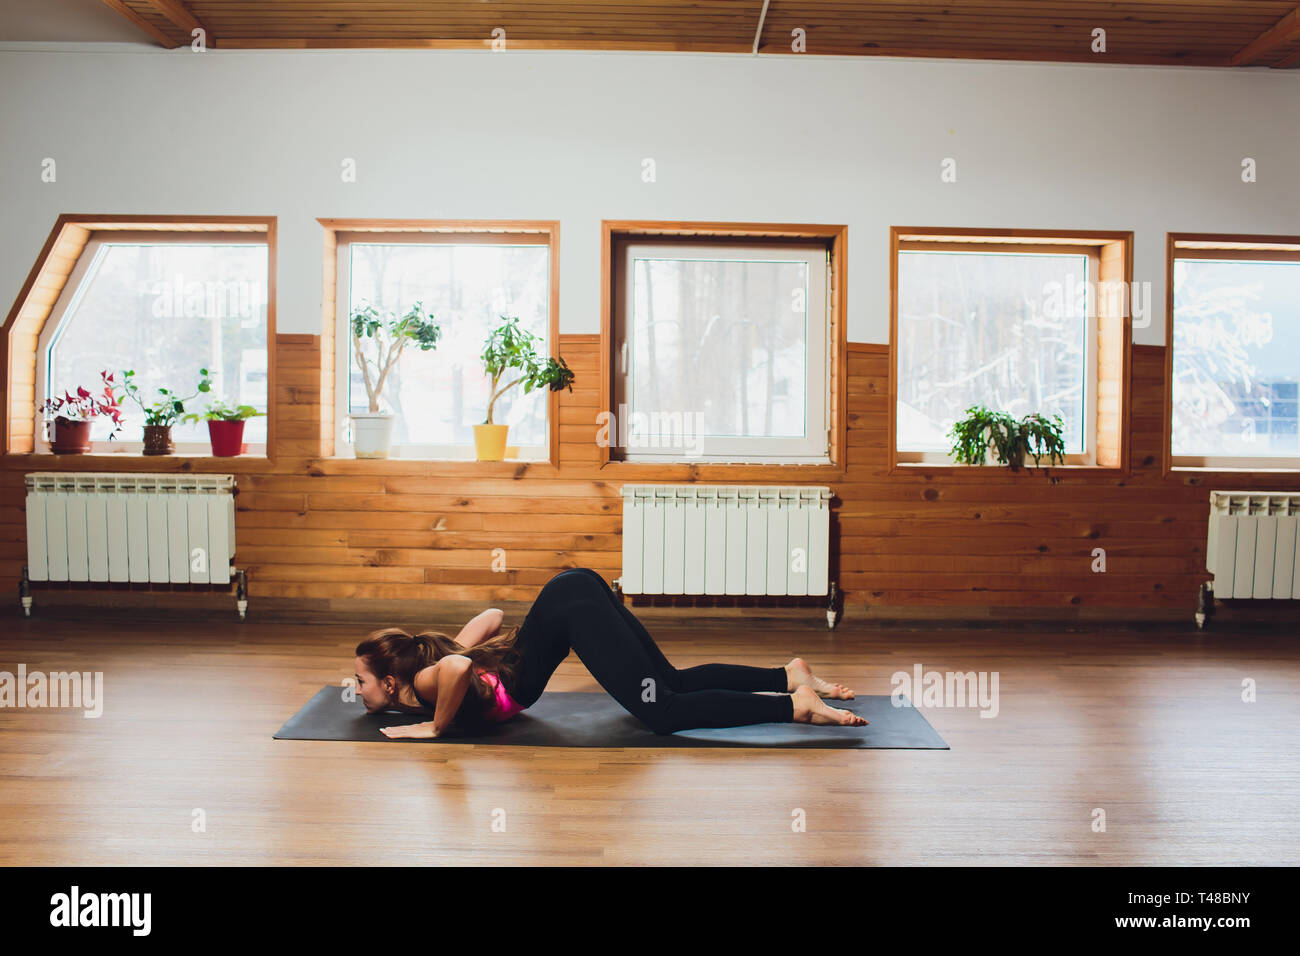 Woman doing Ashtanga Vinyasa yoga Surya Namaskar Sun Salutation asana Adhomukha svanasana - downward facing dog on yoga mat in studio. Stock Photo